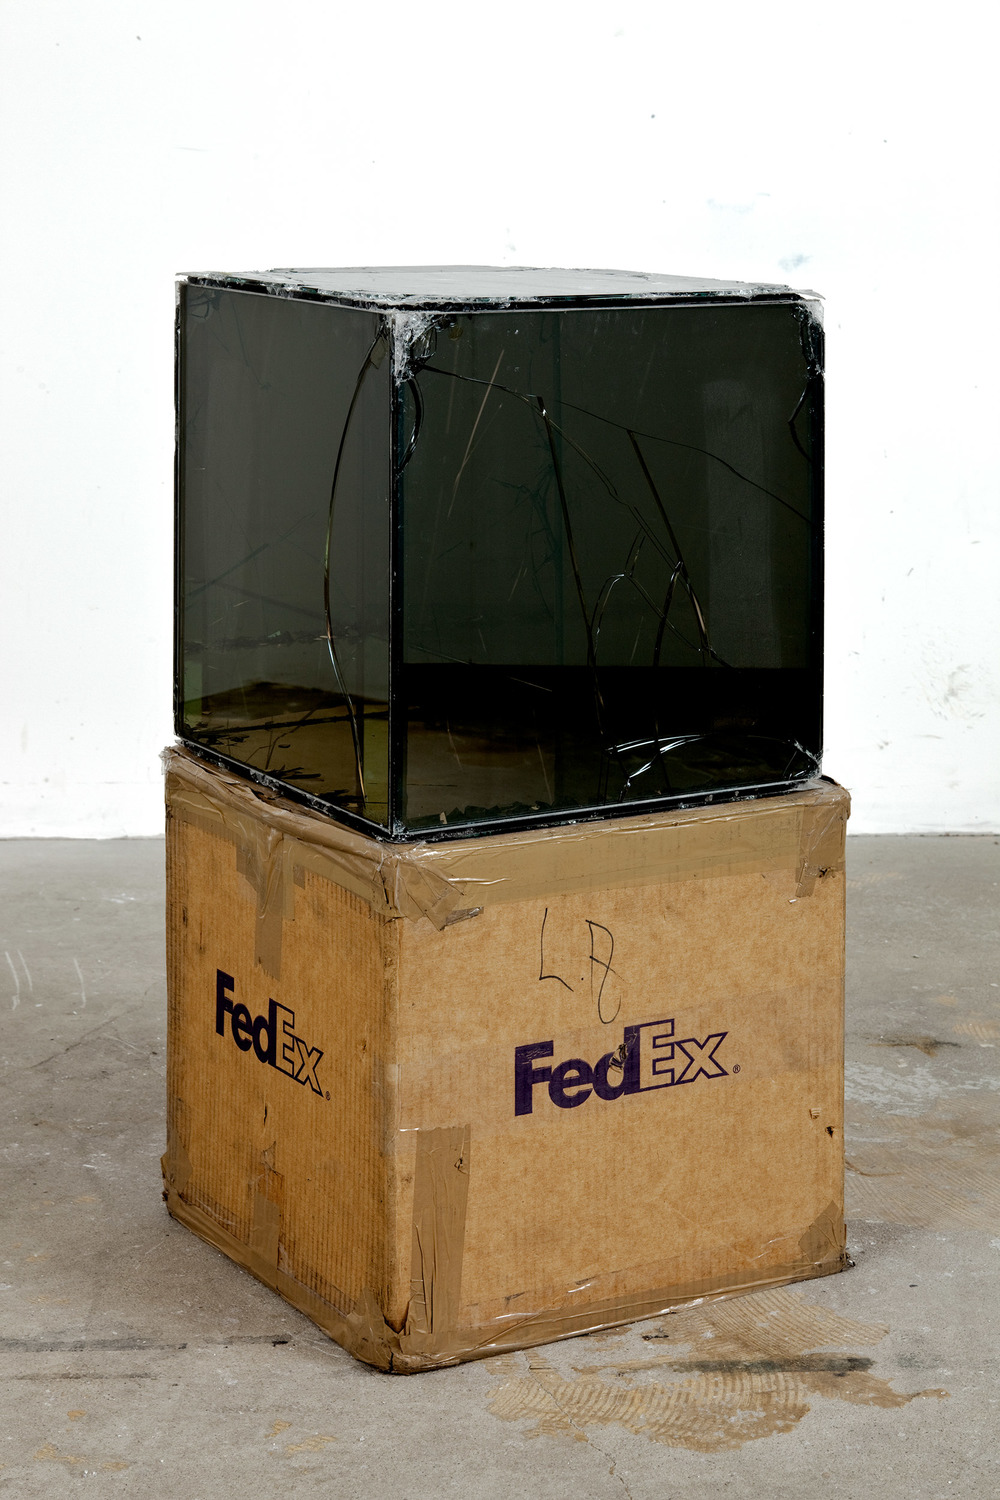 FedEx Kraft Box 2005 FEDEX 330504 10/05 SSCC, Priority Overnight, Los Angeles–Miami trk#865344981314, October 29–30, 2008, Priority Overnight, Miami–Los Angeles trk#861049125089, November 17–18, 2008, Priority Overnight, Los Angeles-Miami Beach trk#860147611241, December 01–02, 2008, Priority Overnight, Miami–Los Angeles trk#867525901310, December 08–09, 2008, Priority Overnight, Los Angeles–Ann Arbor trk#867525901228, March 09–10, 2009, Standard Overnight, Ann Arbor–Los Angeles trk#868274625705, July 09–10, 2009, Standard Overnight, Los Angeles–San Francisco trk#870069766460, August 27–28, 2009, Standard Overnight, San Francisco–Los Angeles trk#870342520112, November 12–13, 2009   2008  Laminated Mirropane, FedEx shipping box, accrued FedEx shipping and tracking labels, silicone, metal, and tape  16 x 16 x 16 inches   Pulley, Cogwheels, Mirrors, and Windows, 2009